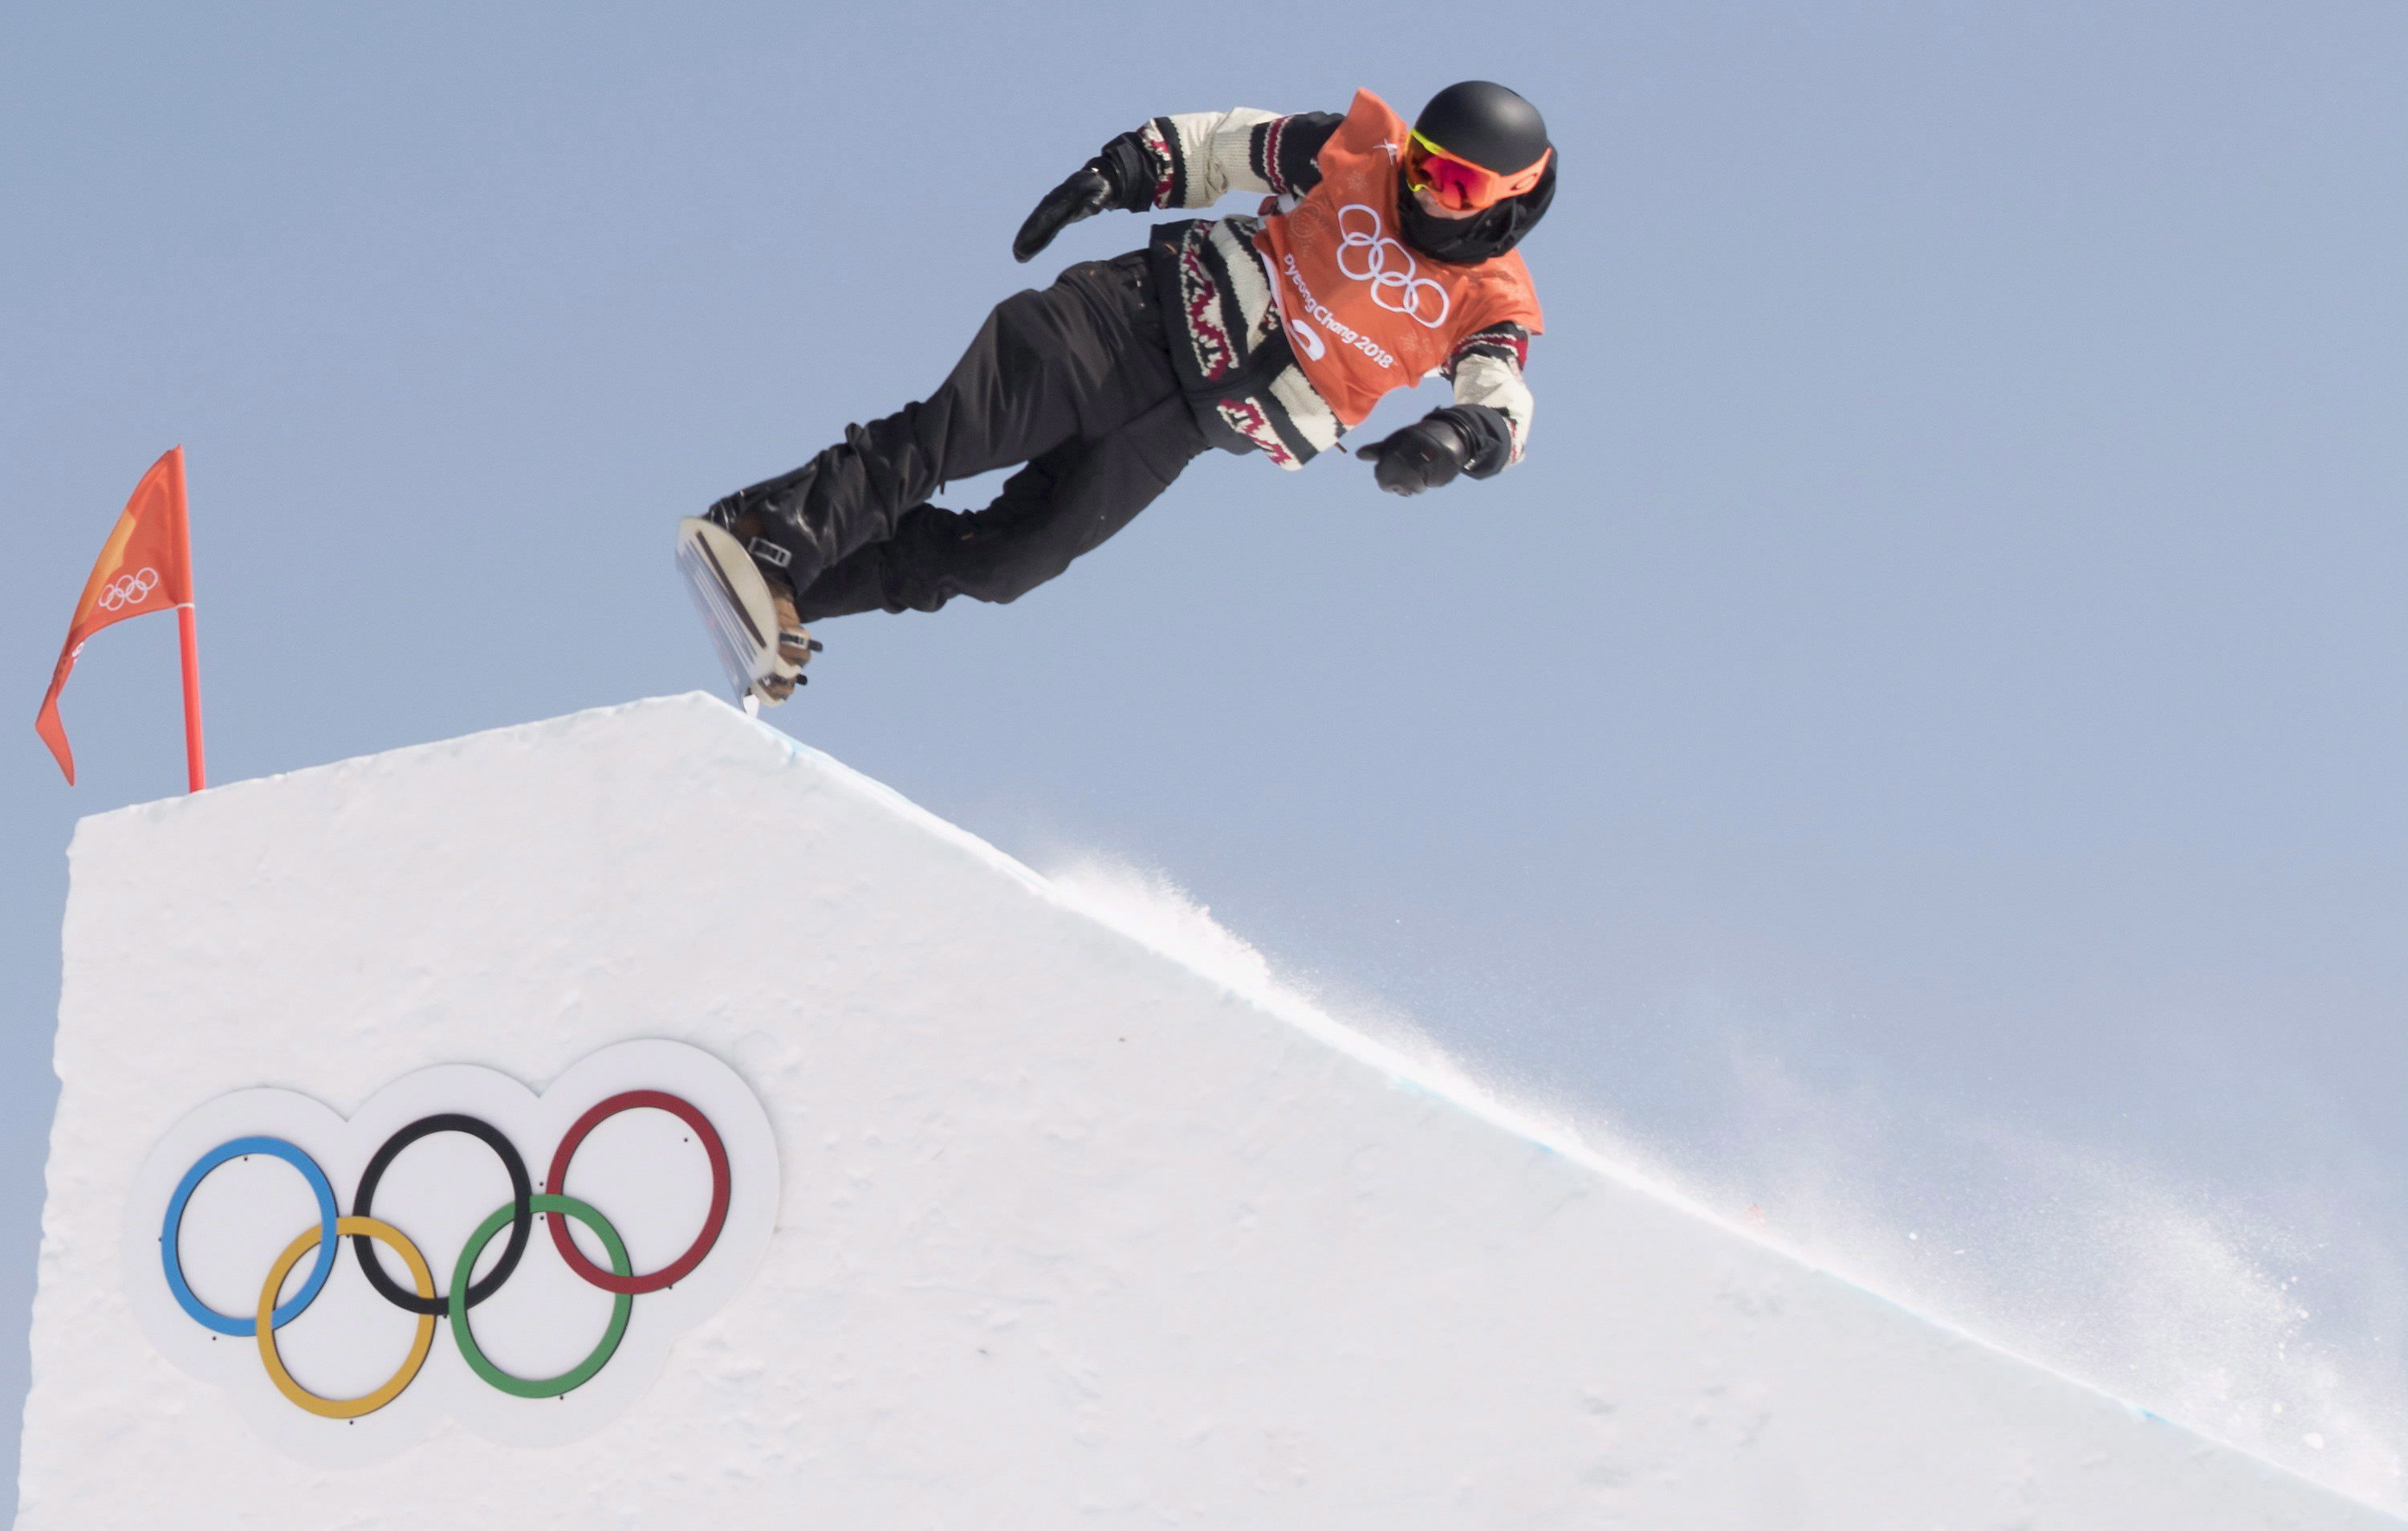 Mark McMorris about to snowboard down a hill at the Pyeong Chang Olympics.